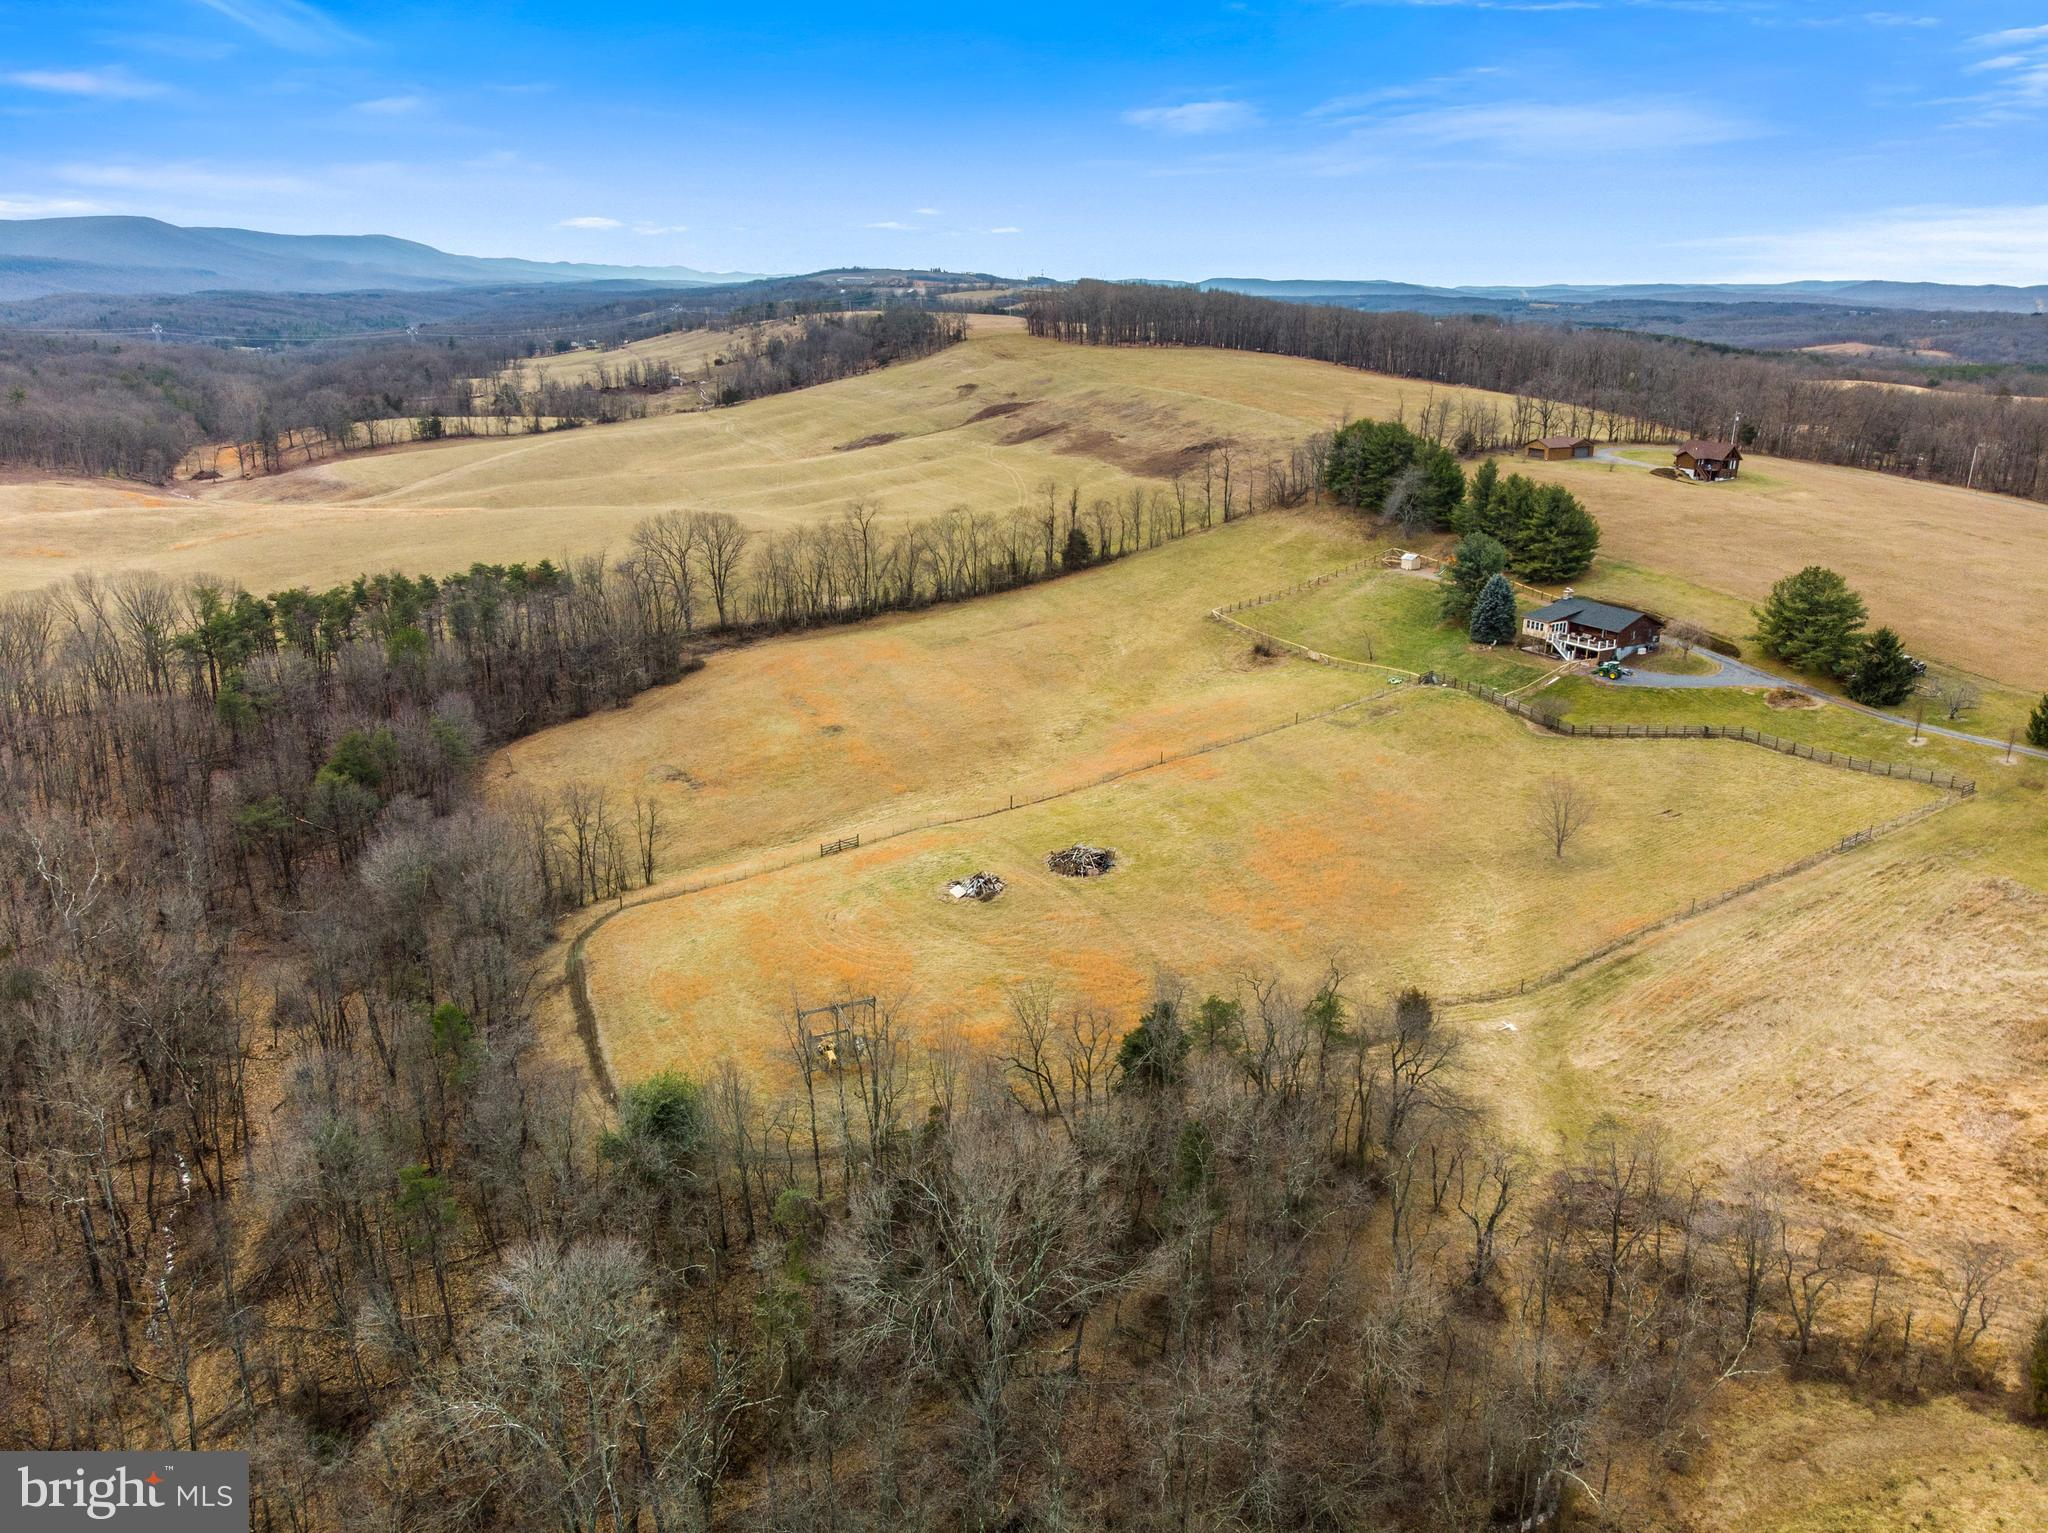 Nestled on almost 26 acres you'll find this 3 BR 3 BA Rancher on a Full unfinished Walk-Out Basement offering Gleaming Newly Refinished Hardwood Floors, Remodeled Bathroom, New Roof in 2018, New Sun Room Addition, New Front & Back Azek Decking, New Hot Water Heater, New Whole House Generator w/500 gallon tank, New Carpeting in 2018, New HVAC Unit, Approx 2 acres of New Fencing, Ready to go Chicken Coop, UV light for well, great Internet Access thru Winchester Wireless, Partially fenced area for livestock and New Tin Ceiling under Deck to stay dry.   This property is approx 15 from Winchester, 8 min to Capon Bridge.  Sellers are offering $5,000 credit towards painting outside with reasonable offer.PROPERTY IS LISTED BELOW NEW APPRAISED VALUE RECEIVED ON 1-31-20